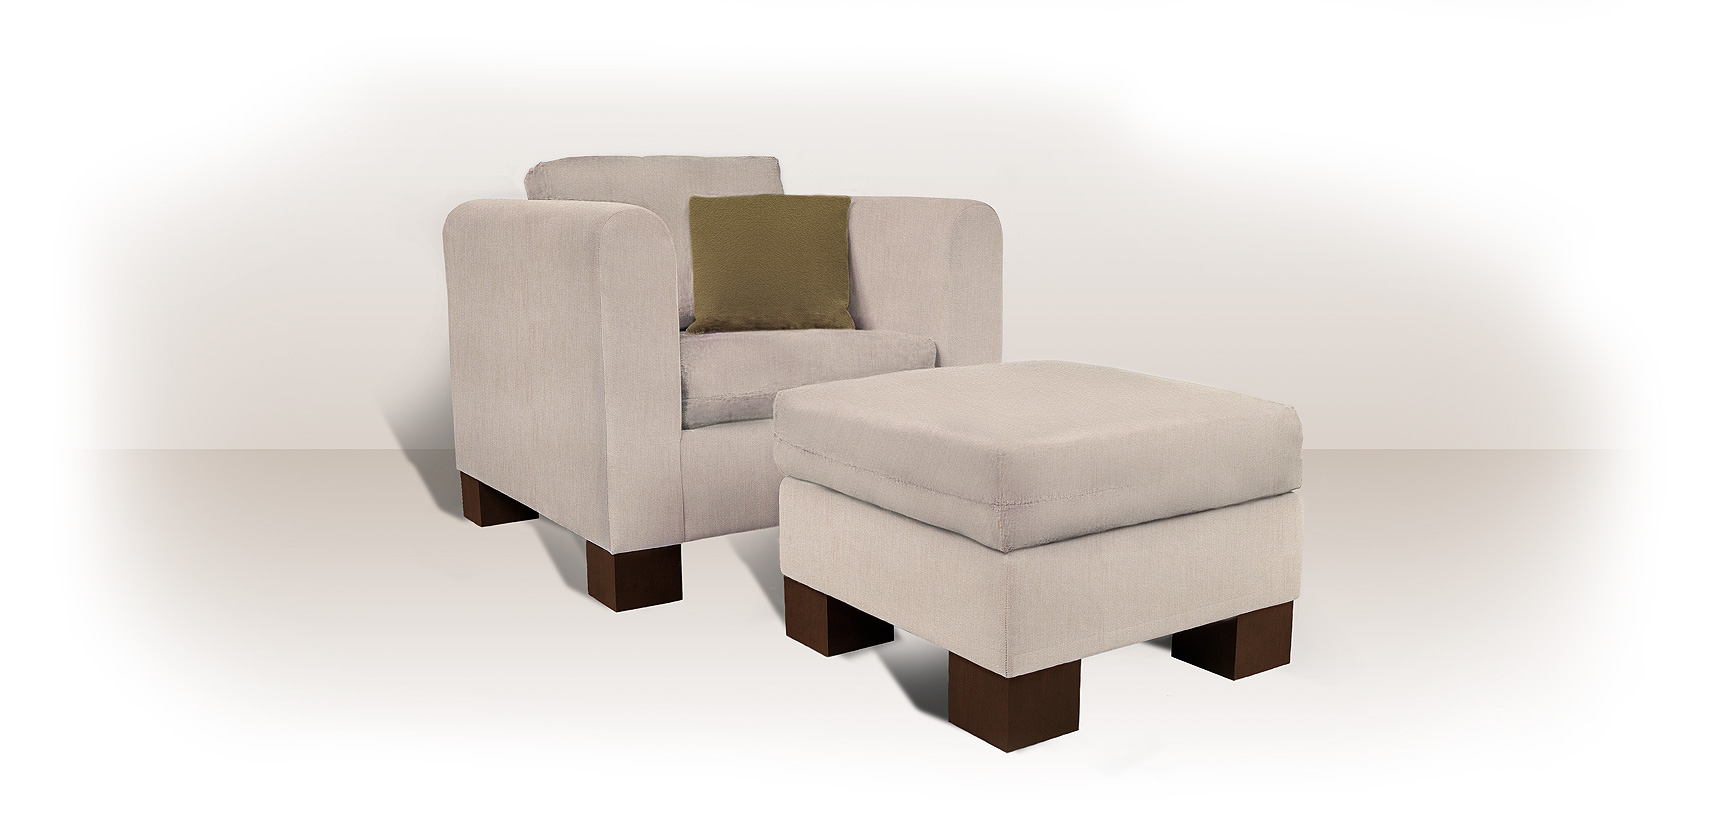 Suave Seating Is Available In Lounge Chairs, Ottomans, Sofas And Loveseats.  Suaveu0027s Sophisticated U201ctuxedou201d Style Is Enhanced By A Sublimely Comfortable  Back ...